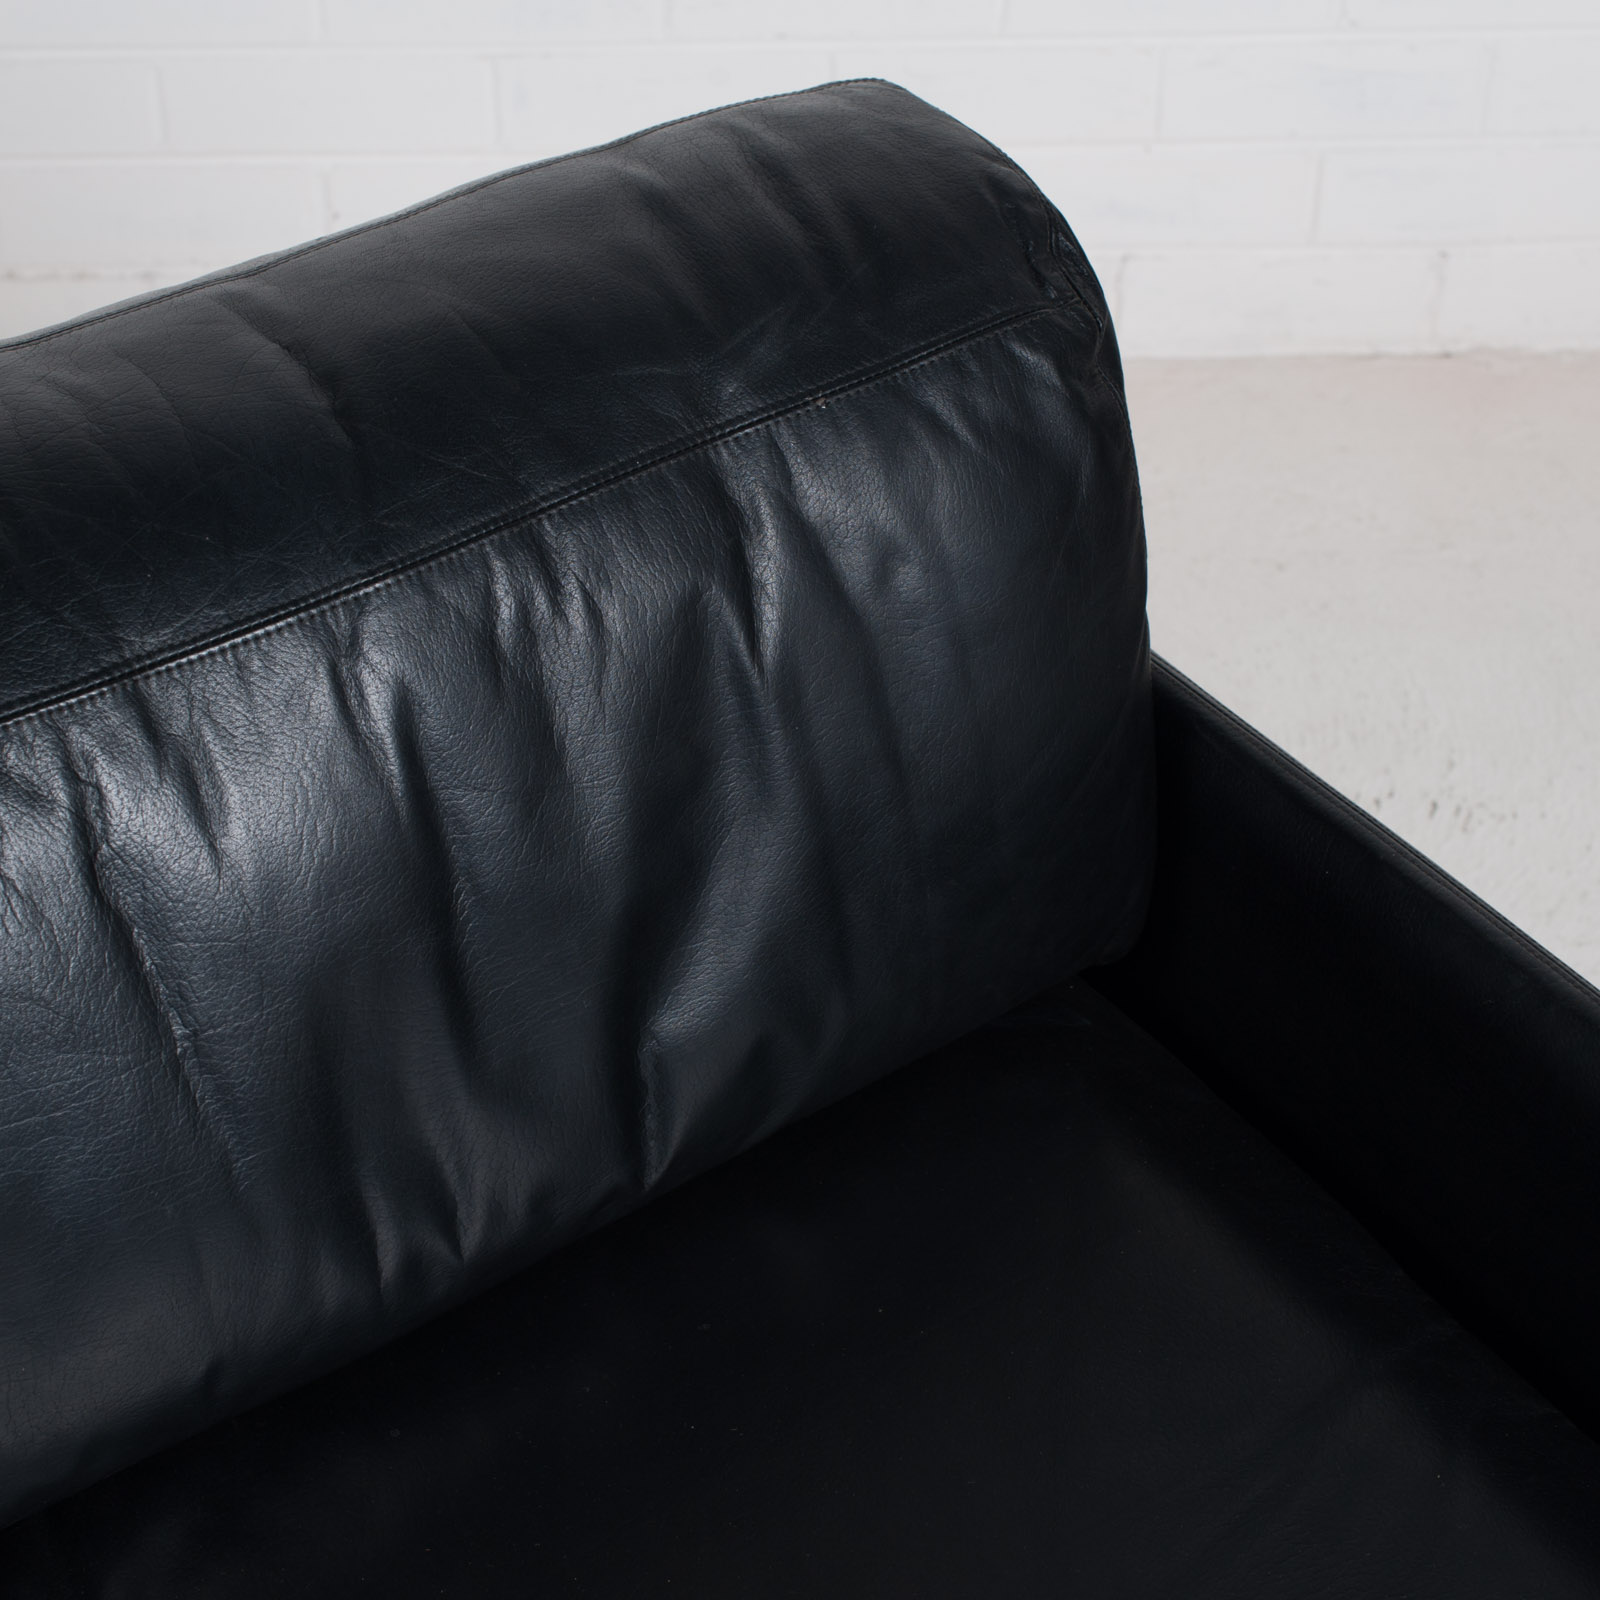 Ds 76 2 Seat Sofa By De Sede In Black Leather 1970s Switzerland 07